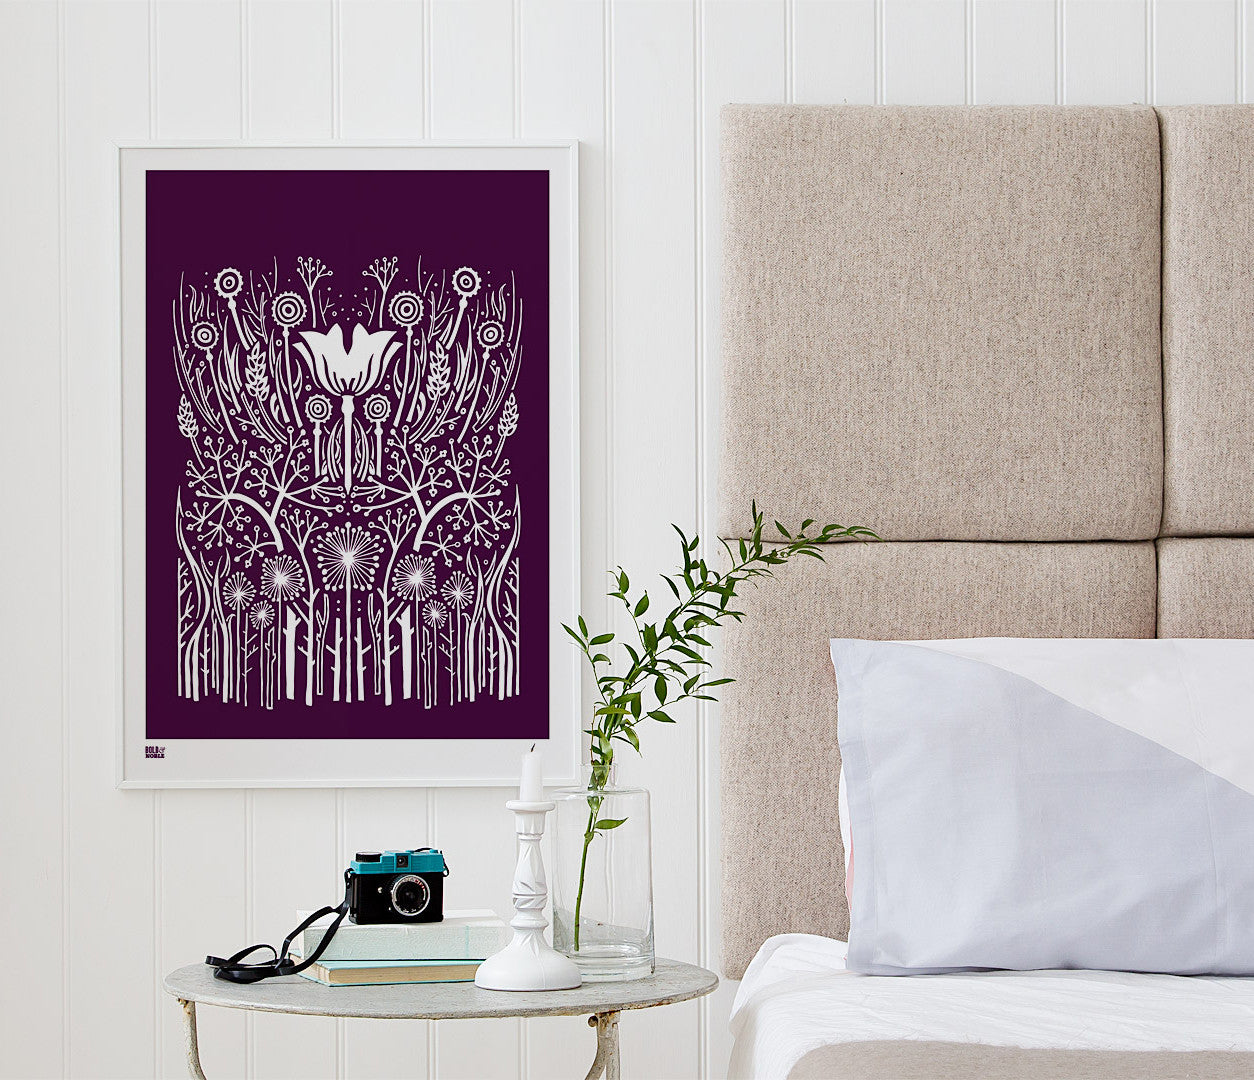 Wall Art ideas: Economical Screen Prints, Hedgerow in Dark Mulberry